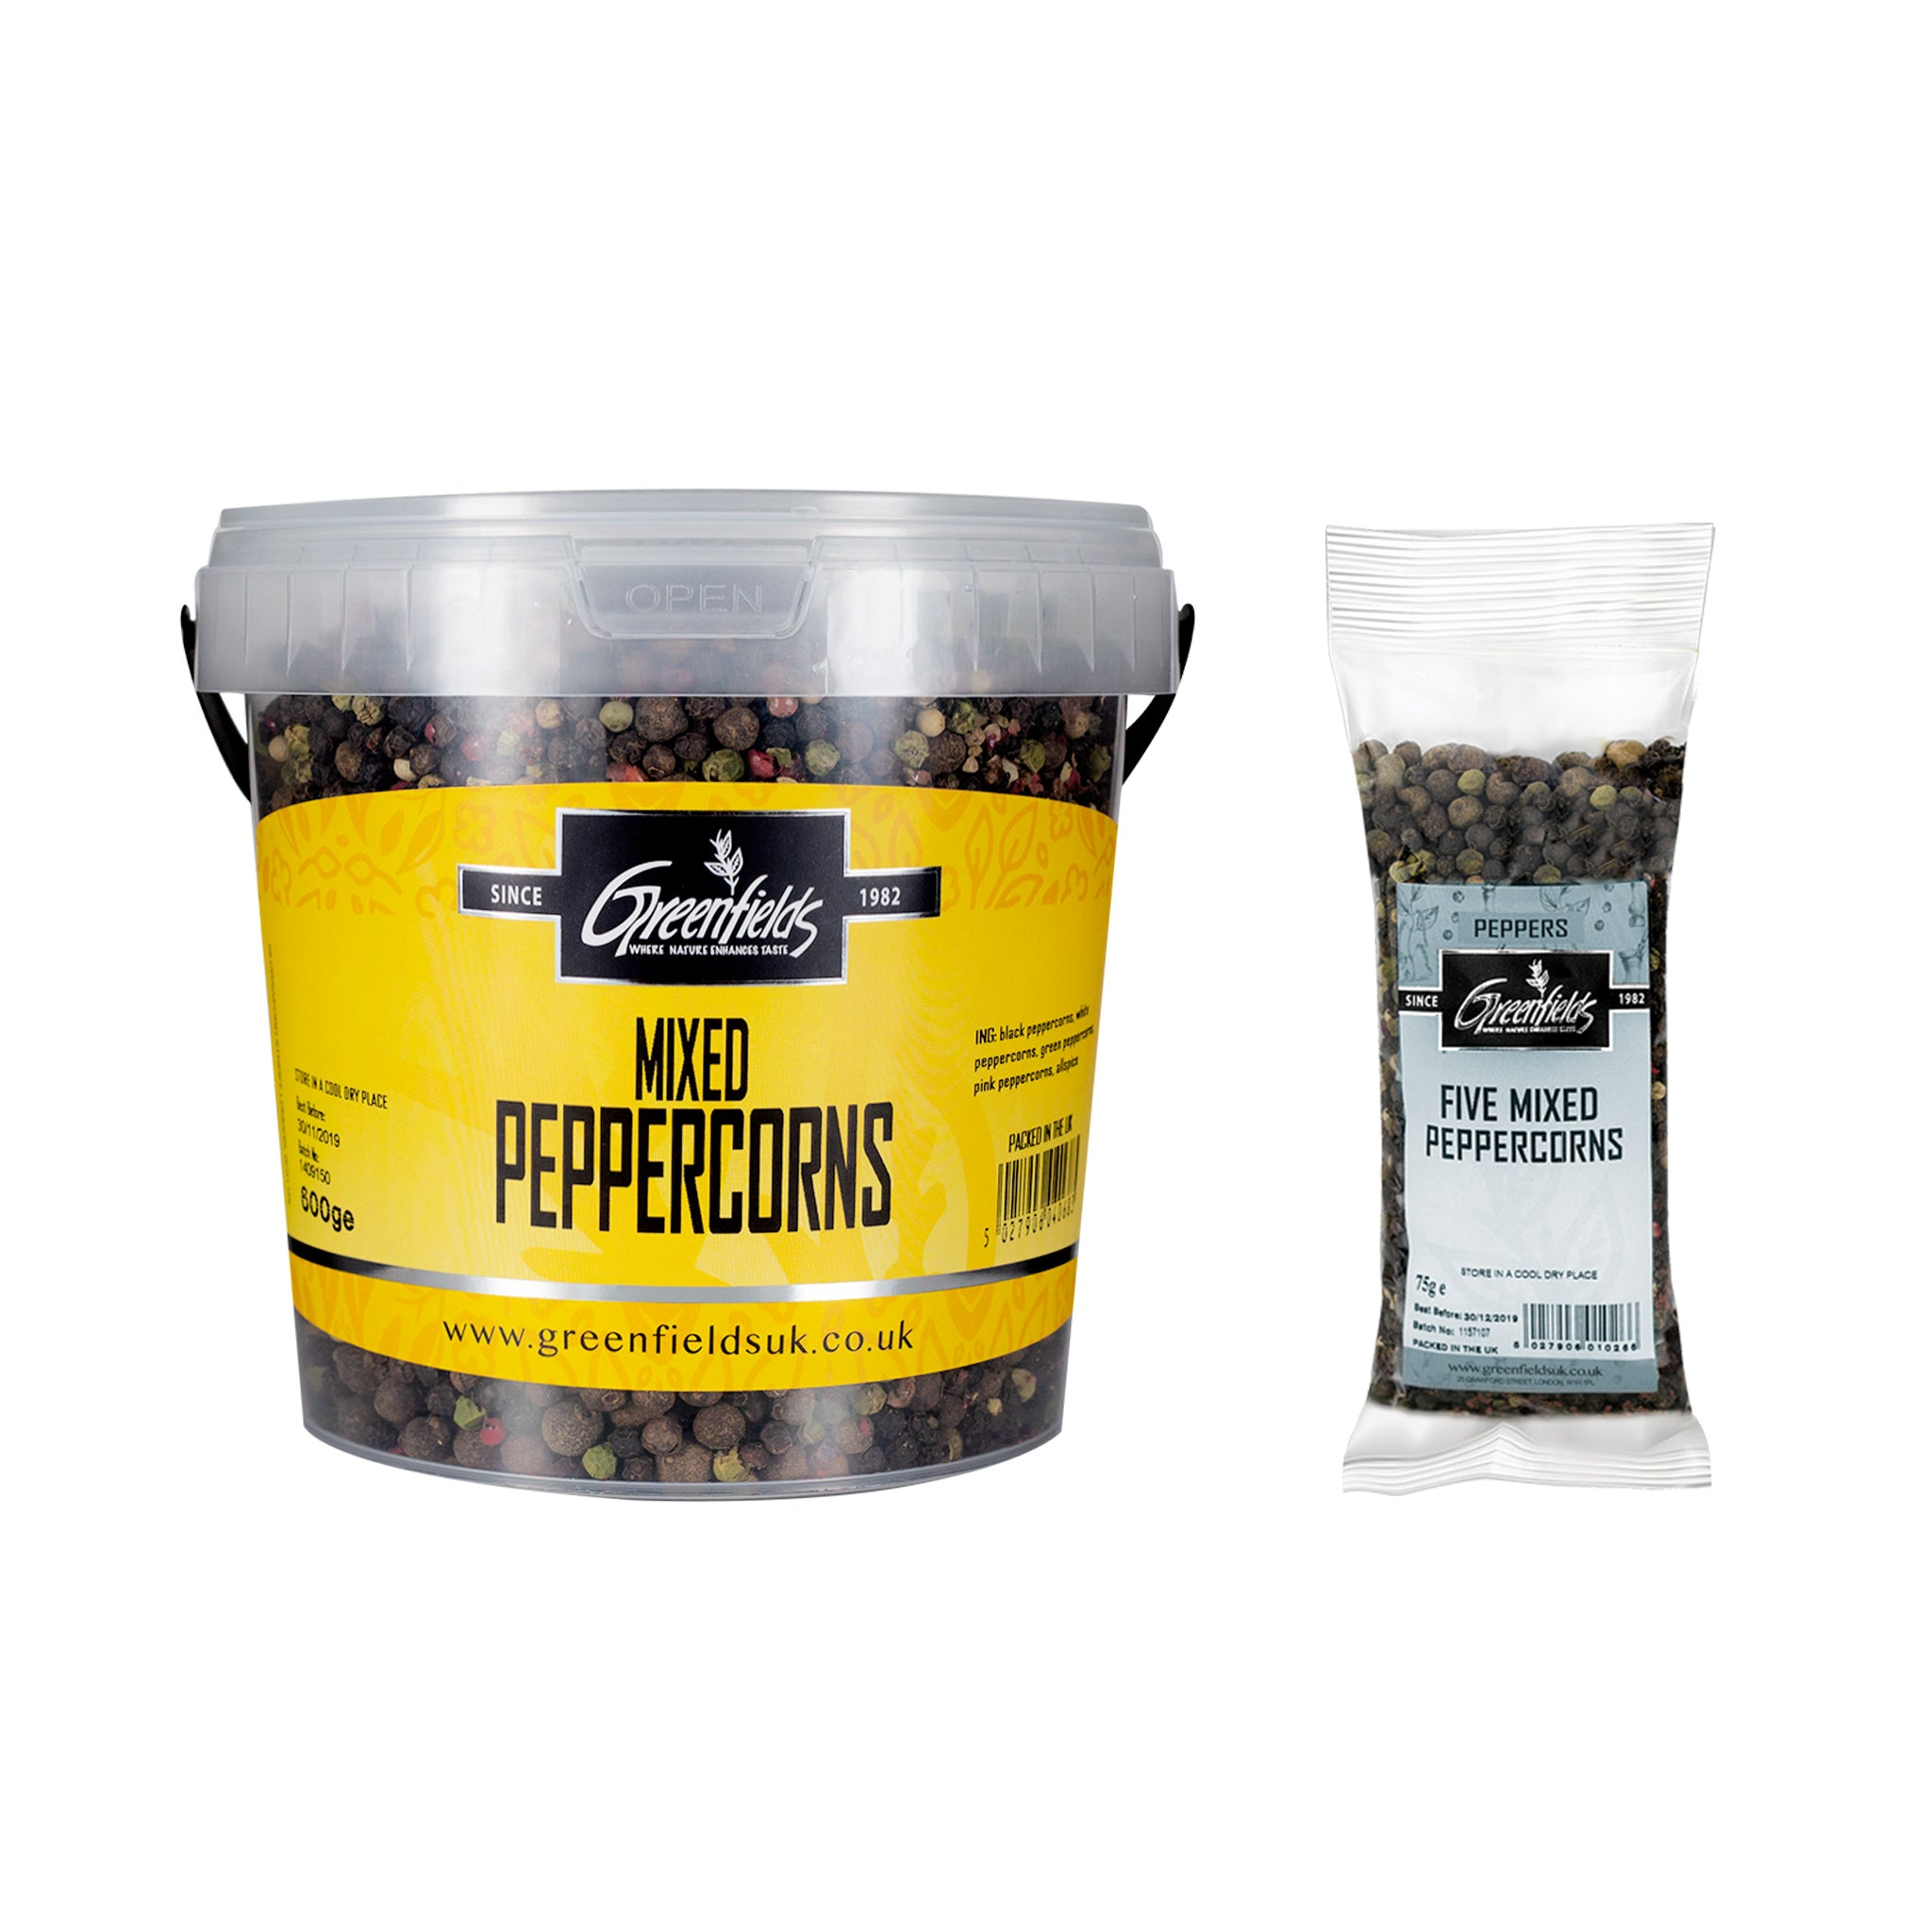 Greenfields Five Mixed Peppercorns